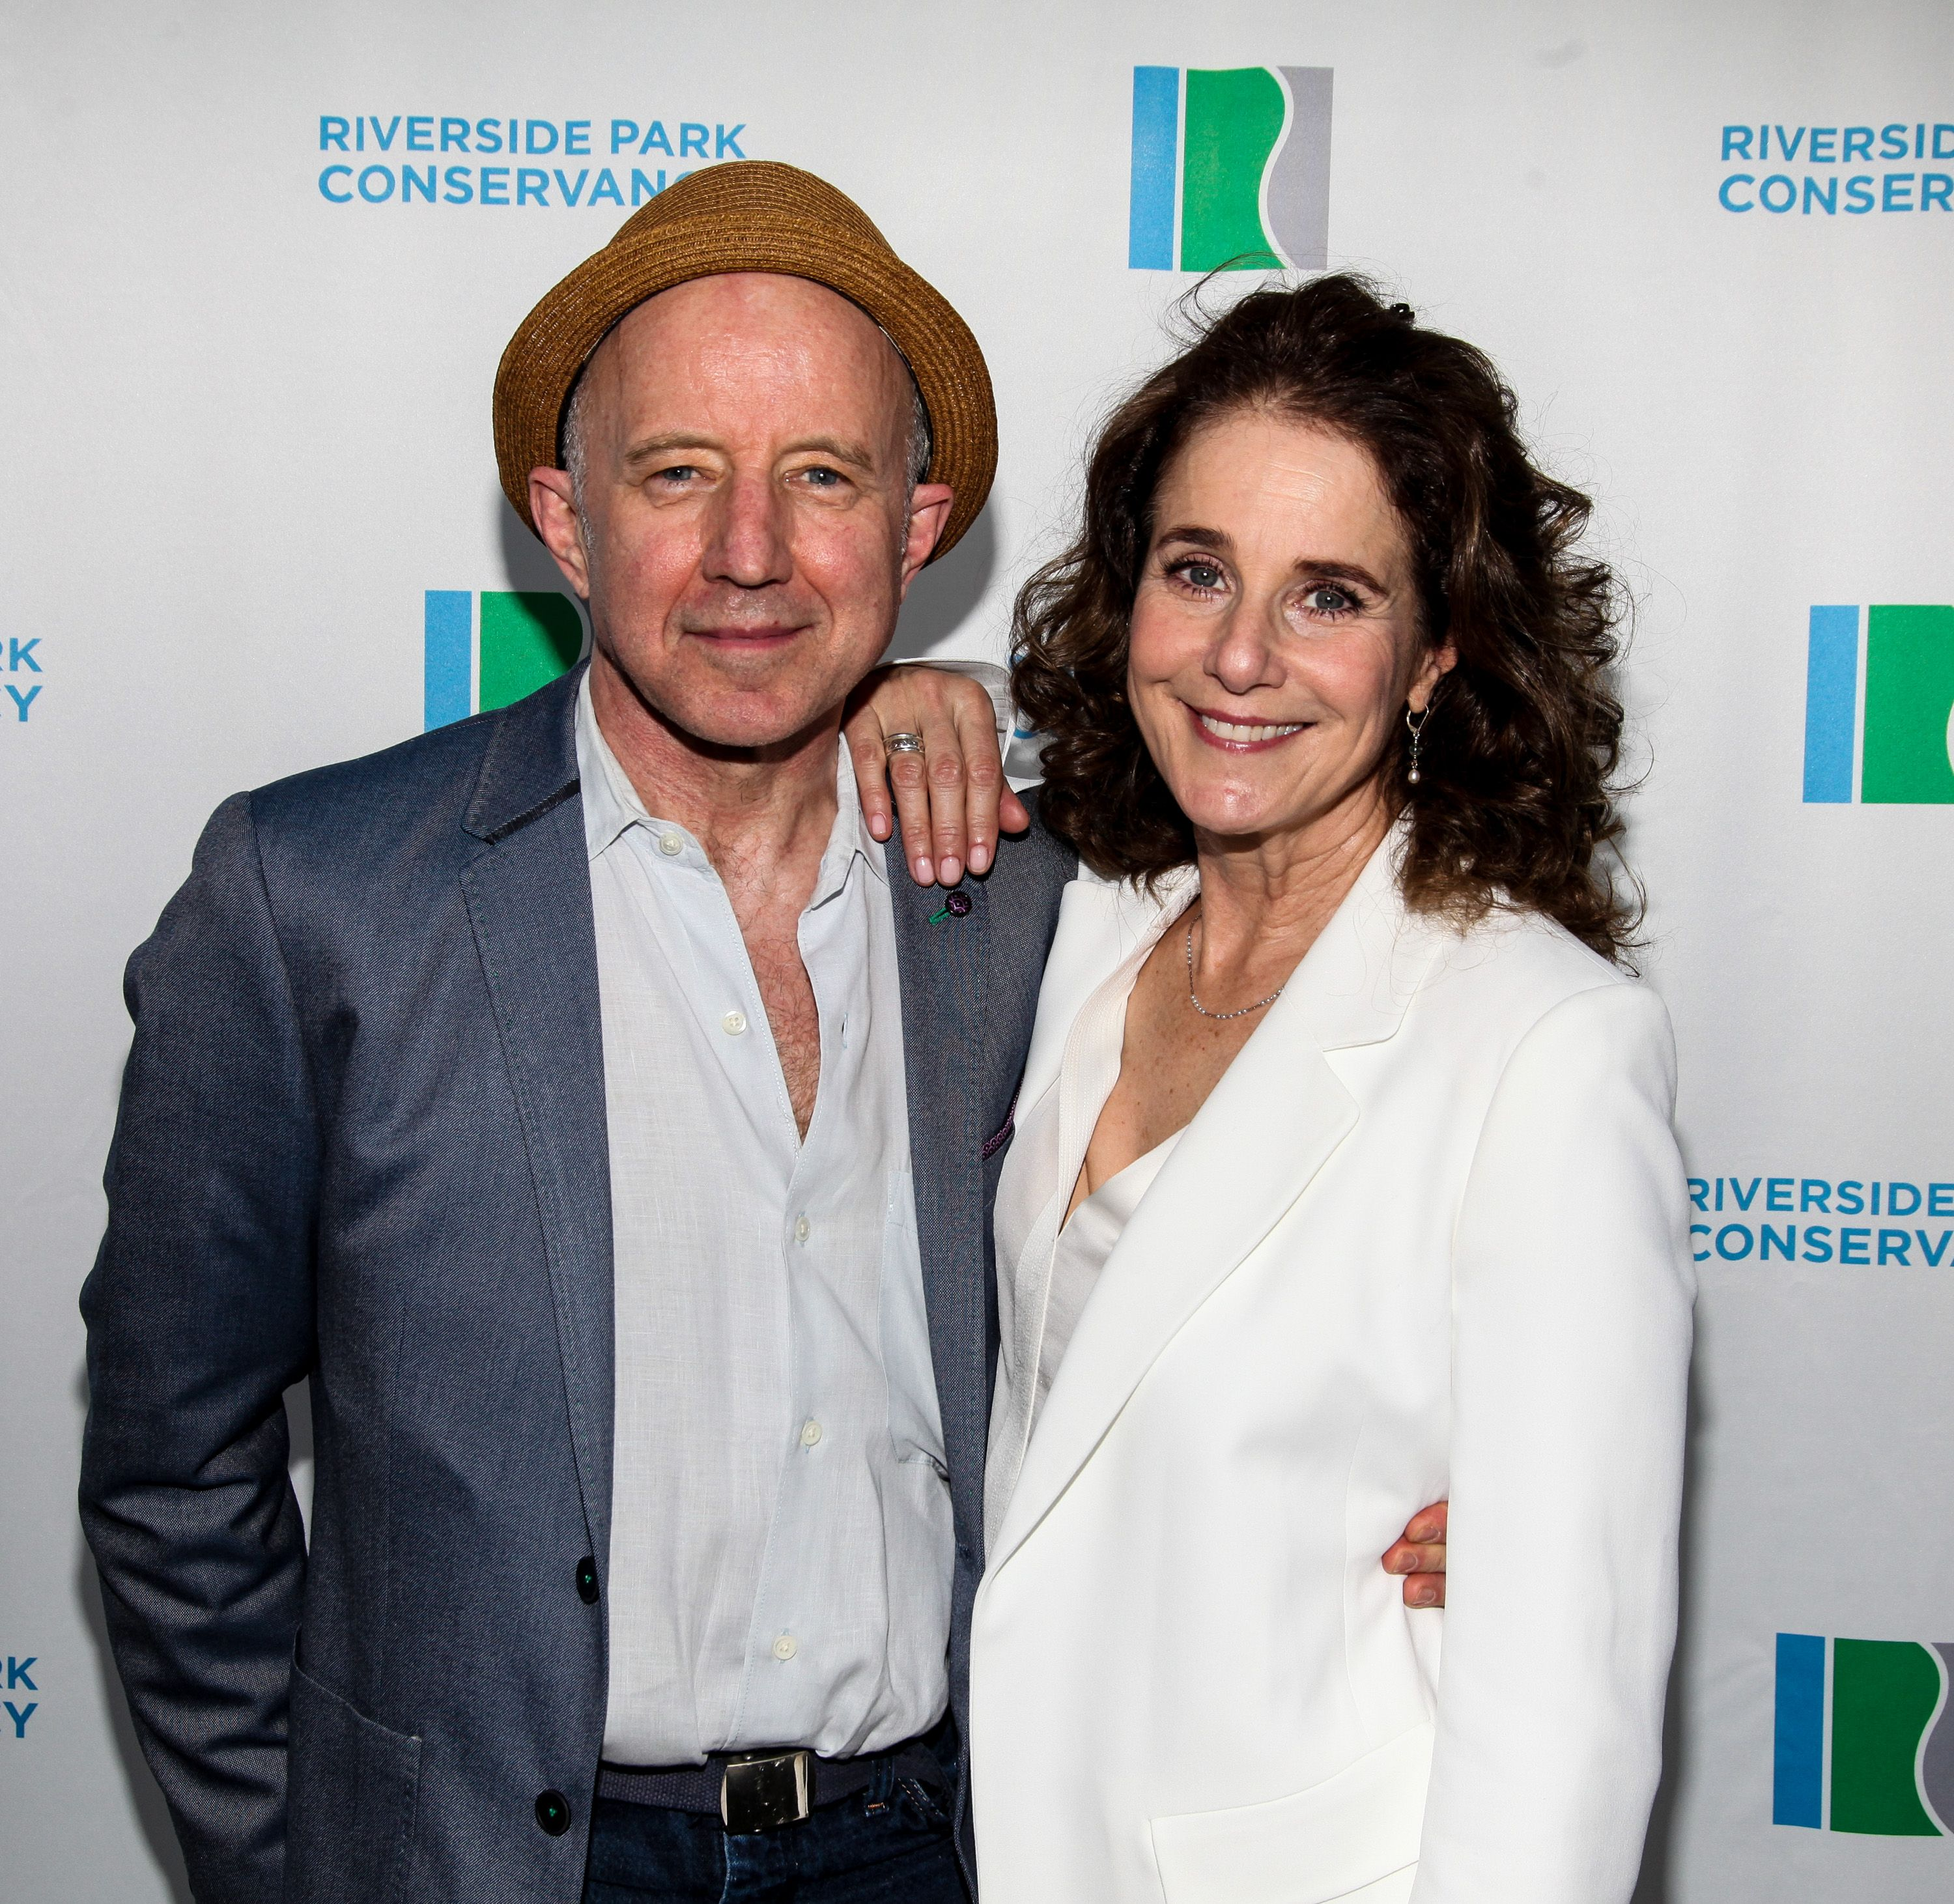 Arliss Howard and Debra Winger at Riverside Park Conservancy's Annual Spring Gala on June 6, 2016 in New York City | Photo: Getty Images